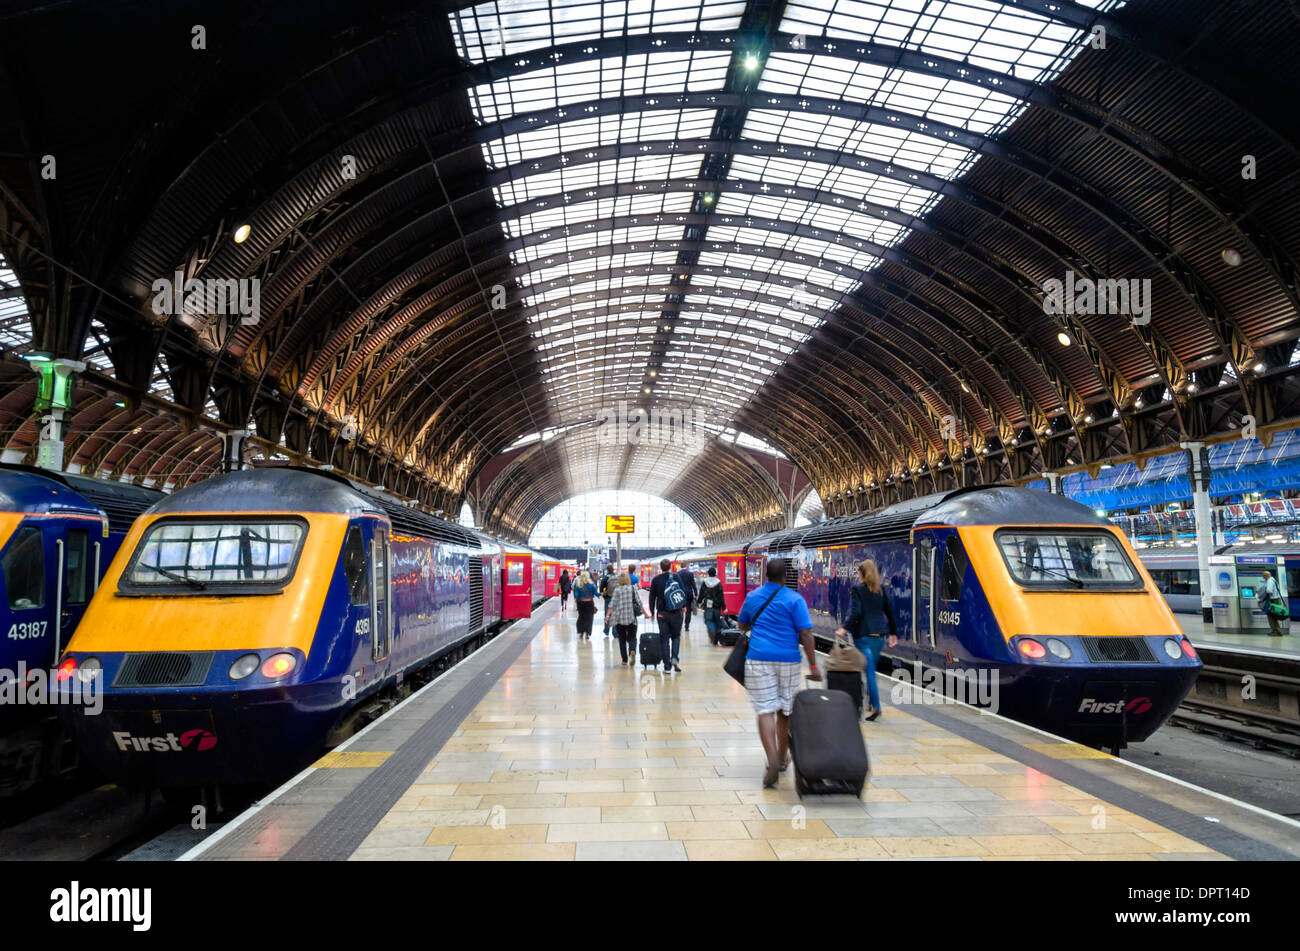 London Paddington Station with its grand curved roof and high speed trains - Stock Image